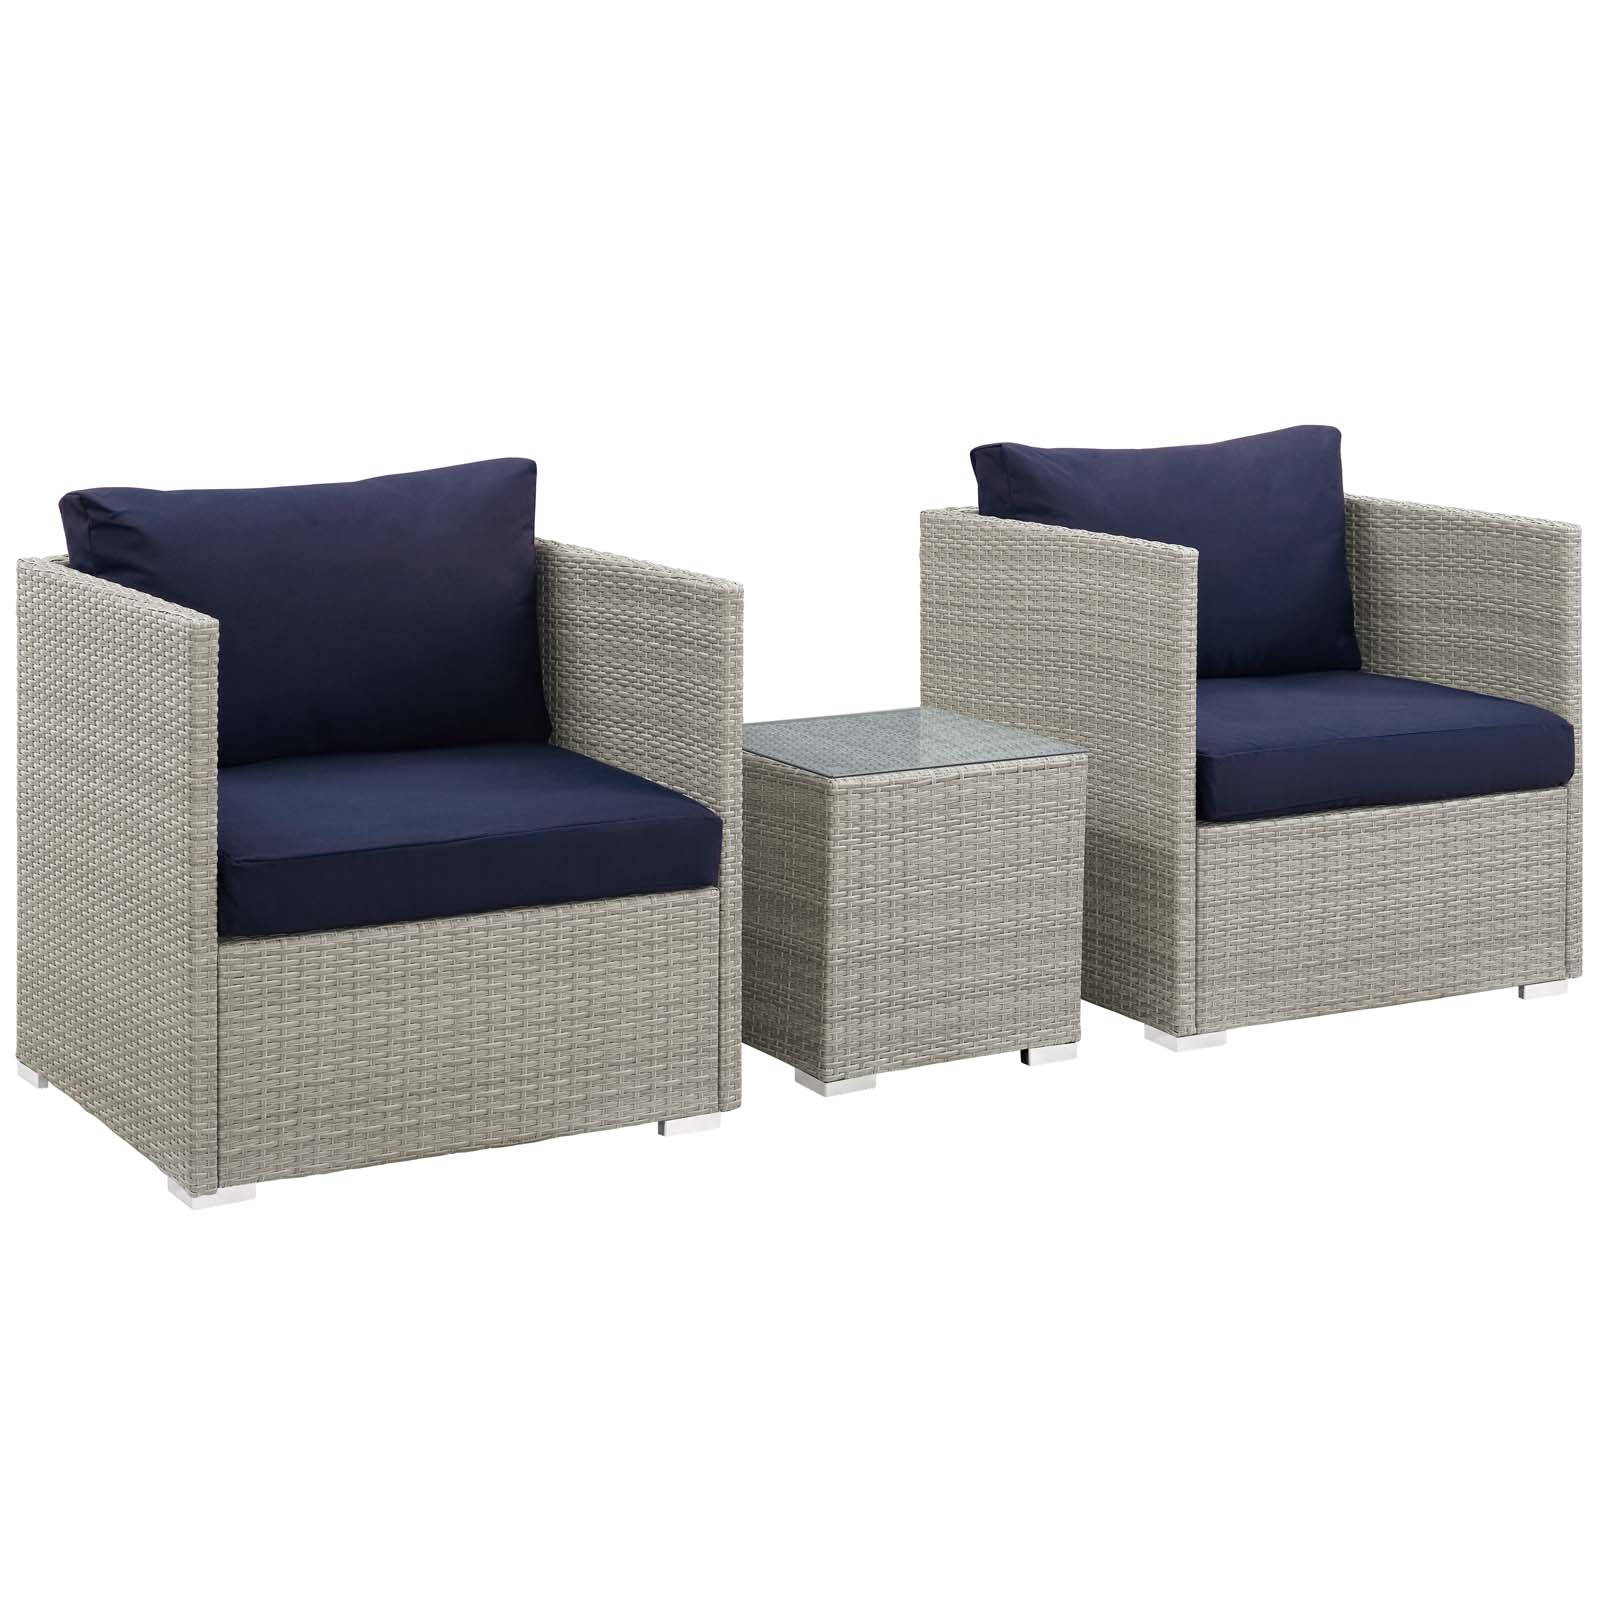 Delicieux ... Outdoor Chair And Ottoman Set Click To Enlarge ...